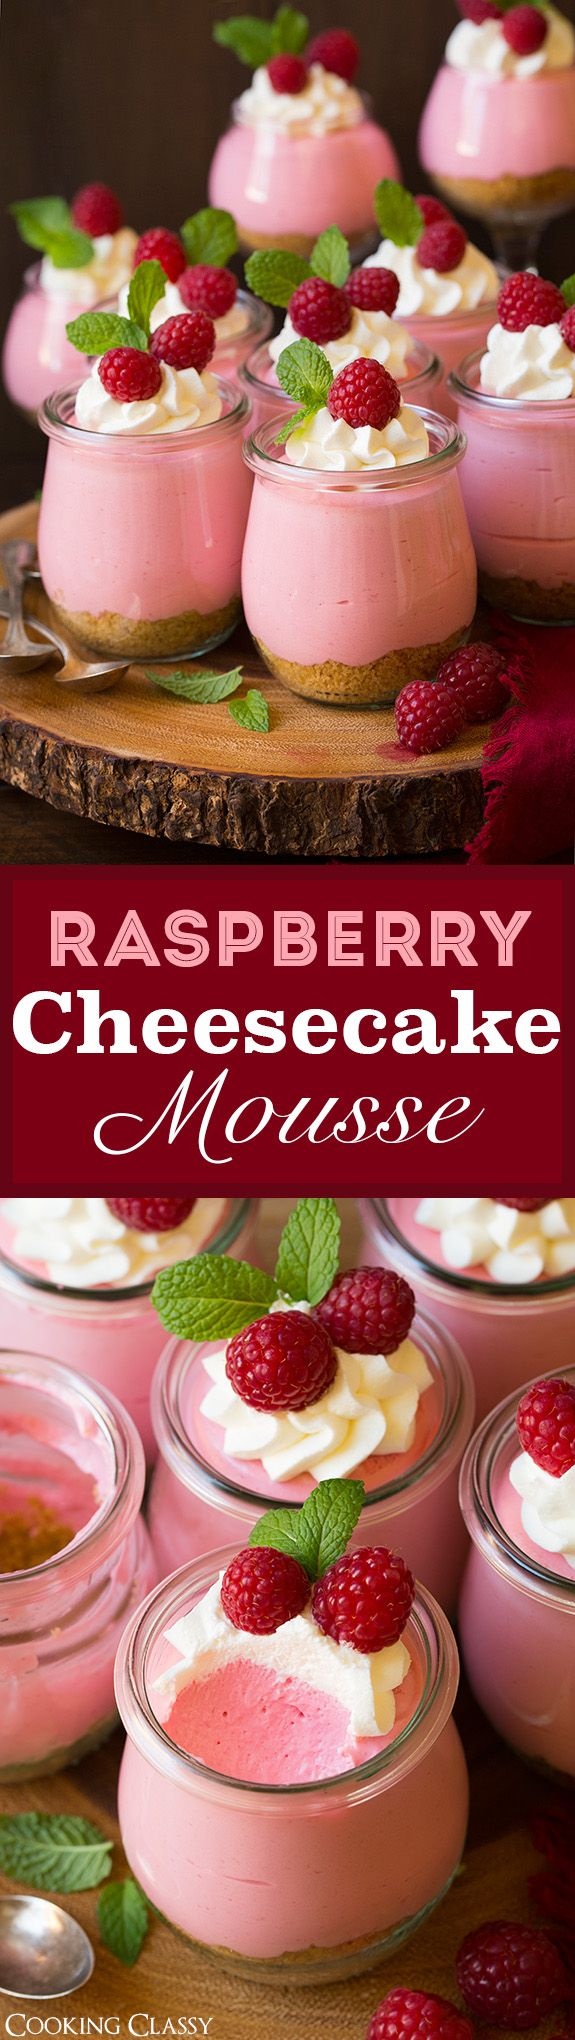 Raspberry Cheesecake Mousse - HEAVEN! These are completely irresistible!!